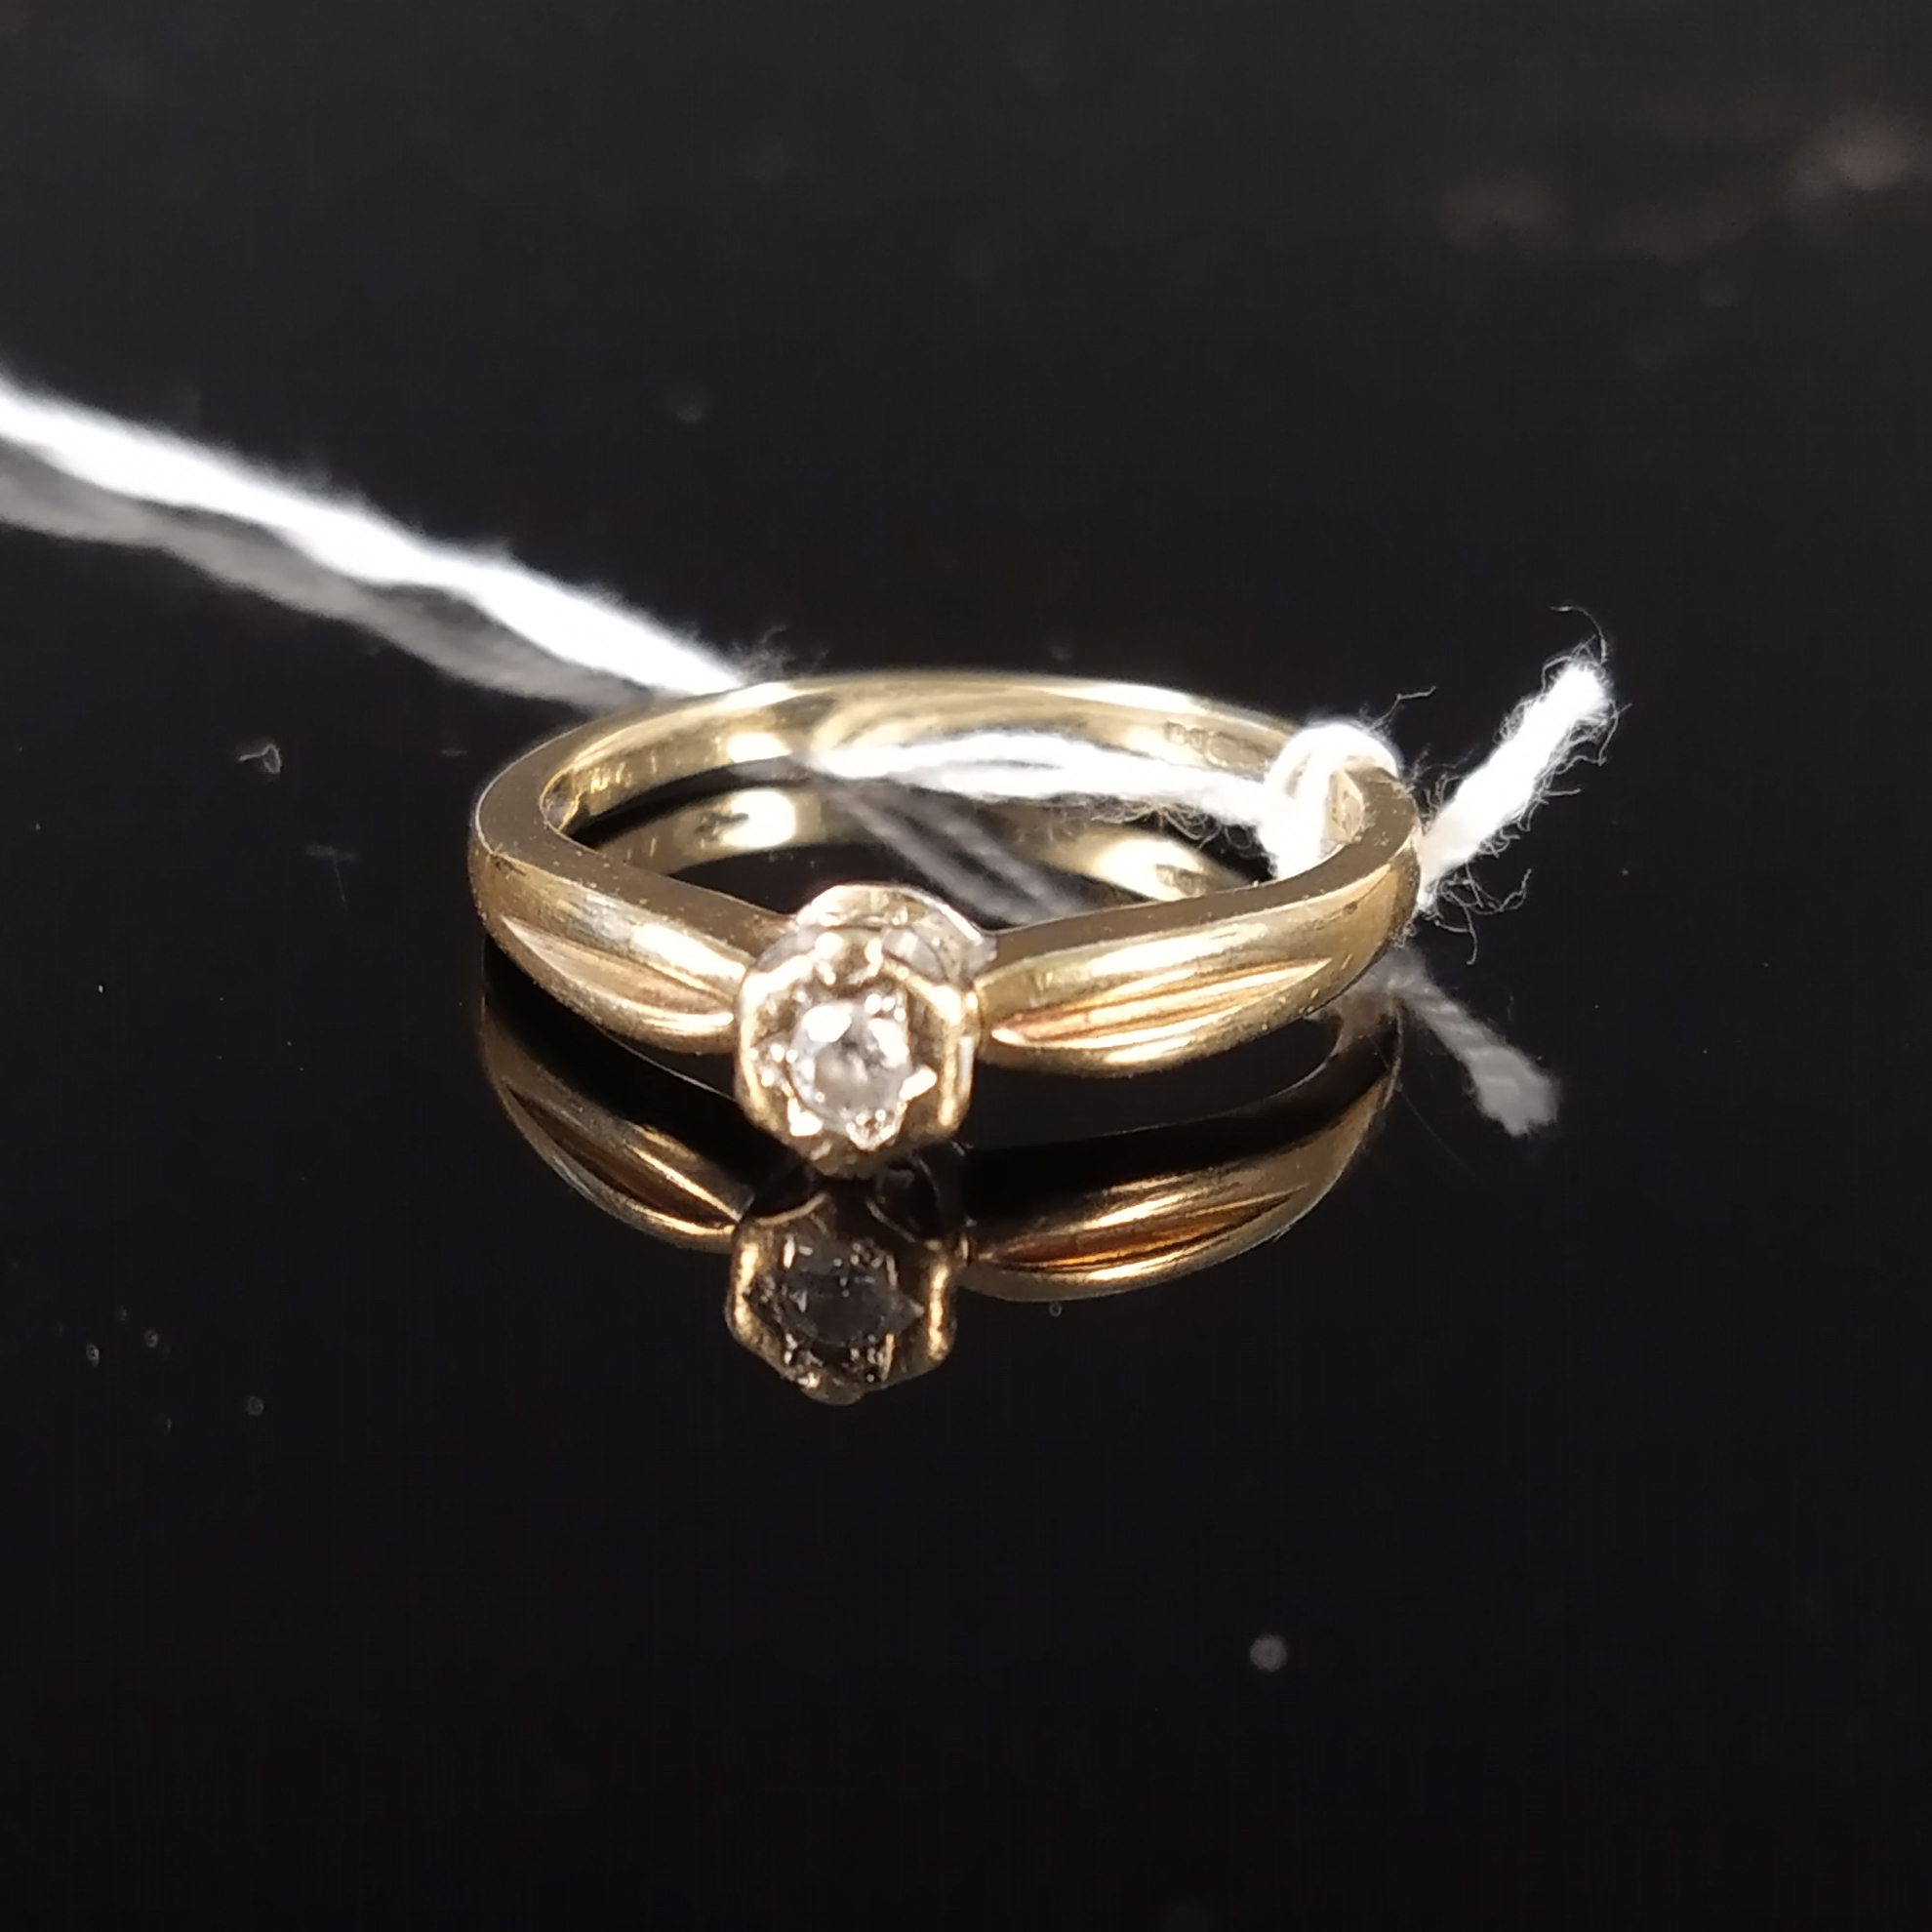 A 9ct gold solitaire diamond ring, size M 1/2, approx 1.